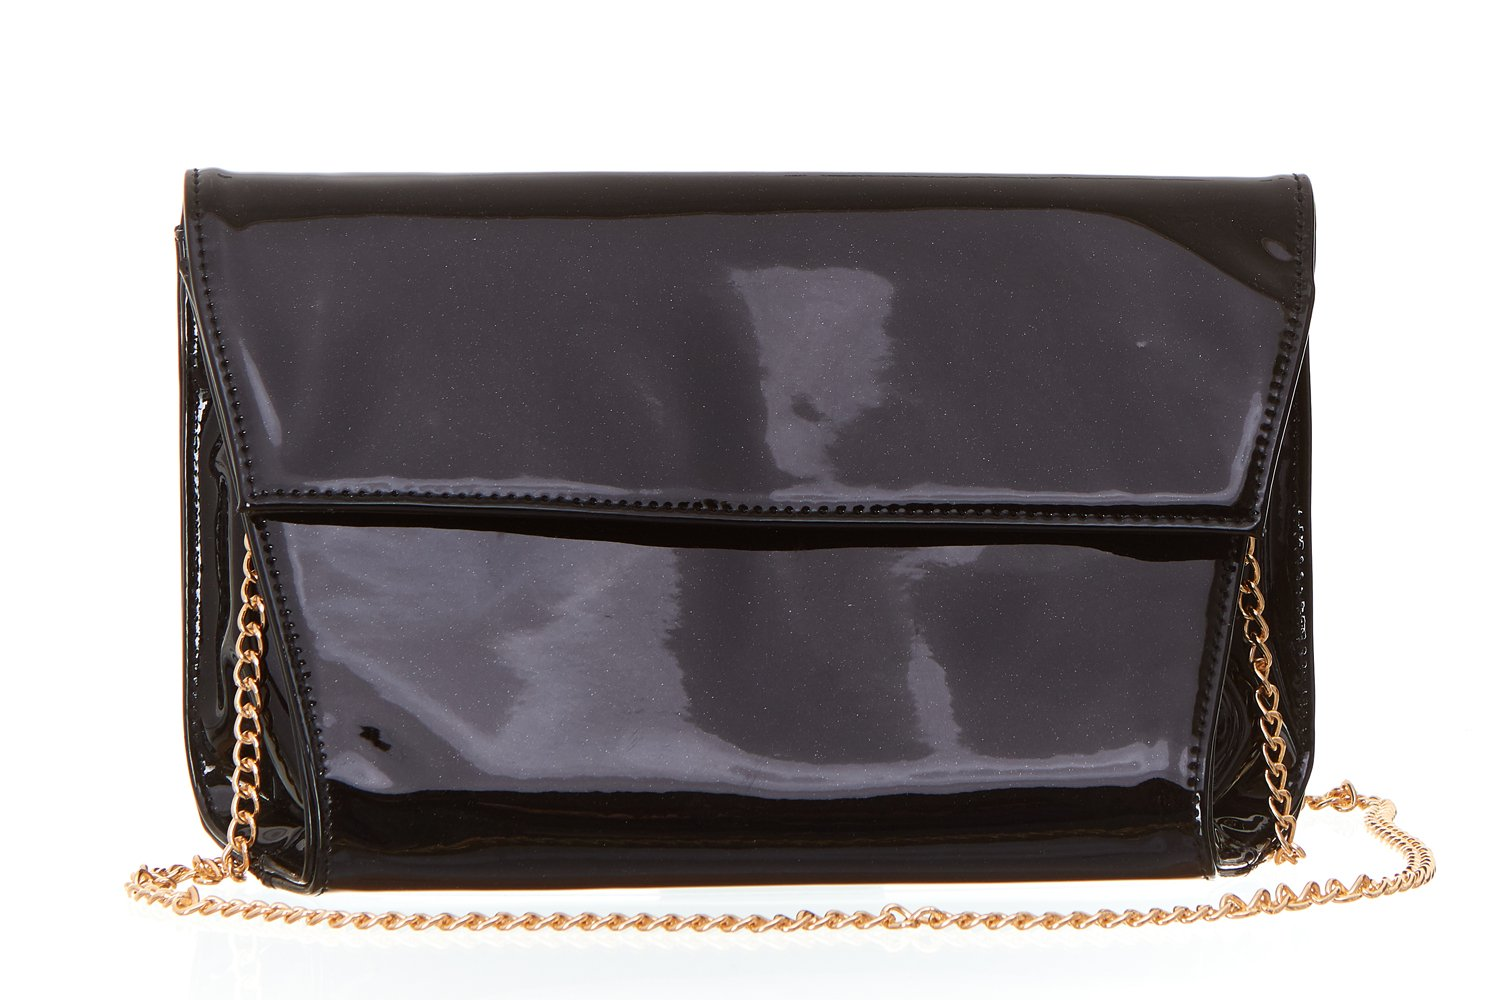 Women's Soft Patent Flap Clutch Handbag with Triangular Sides